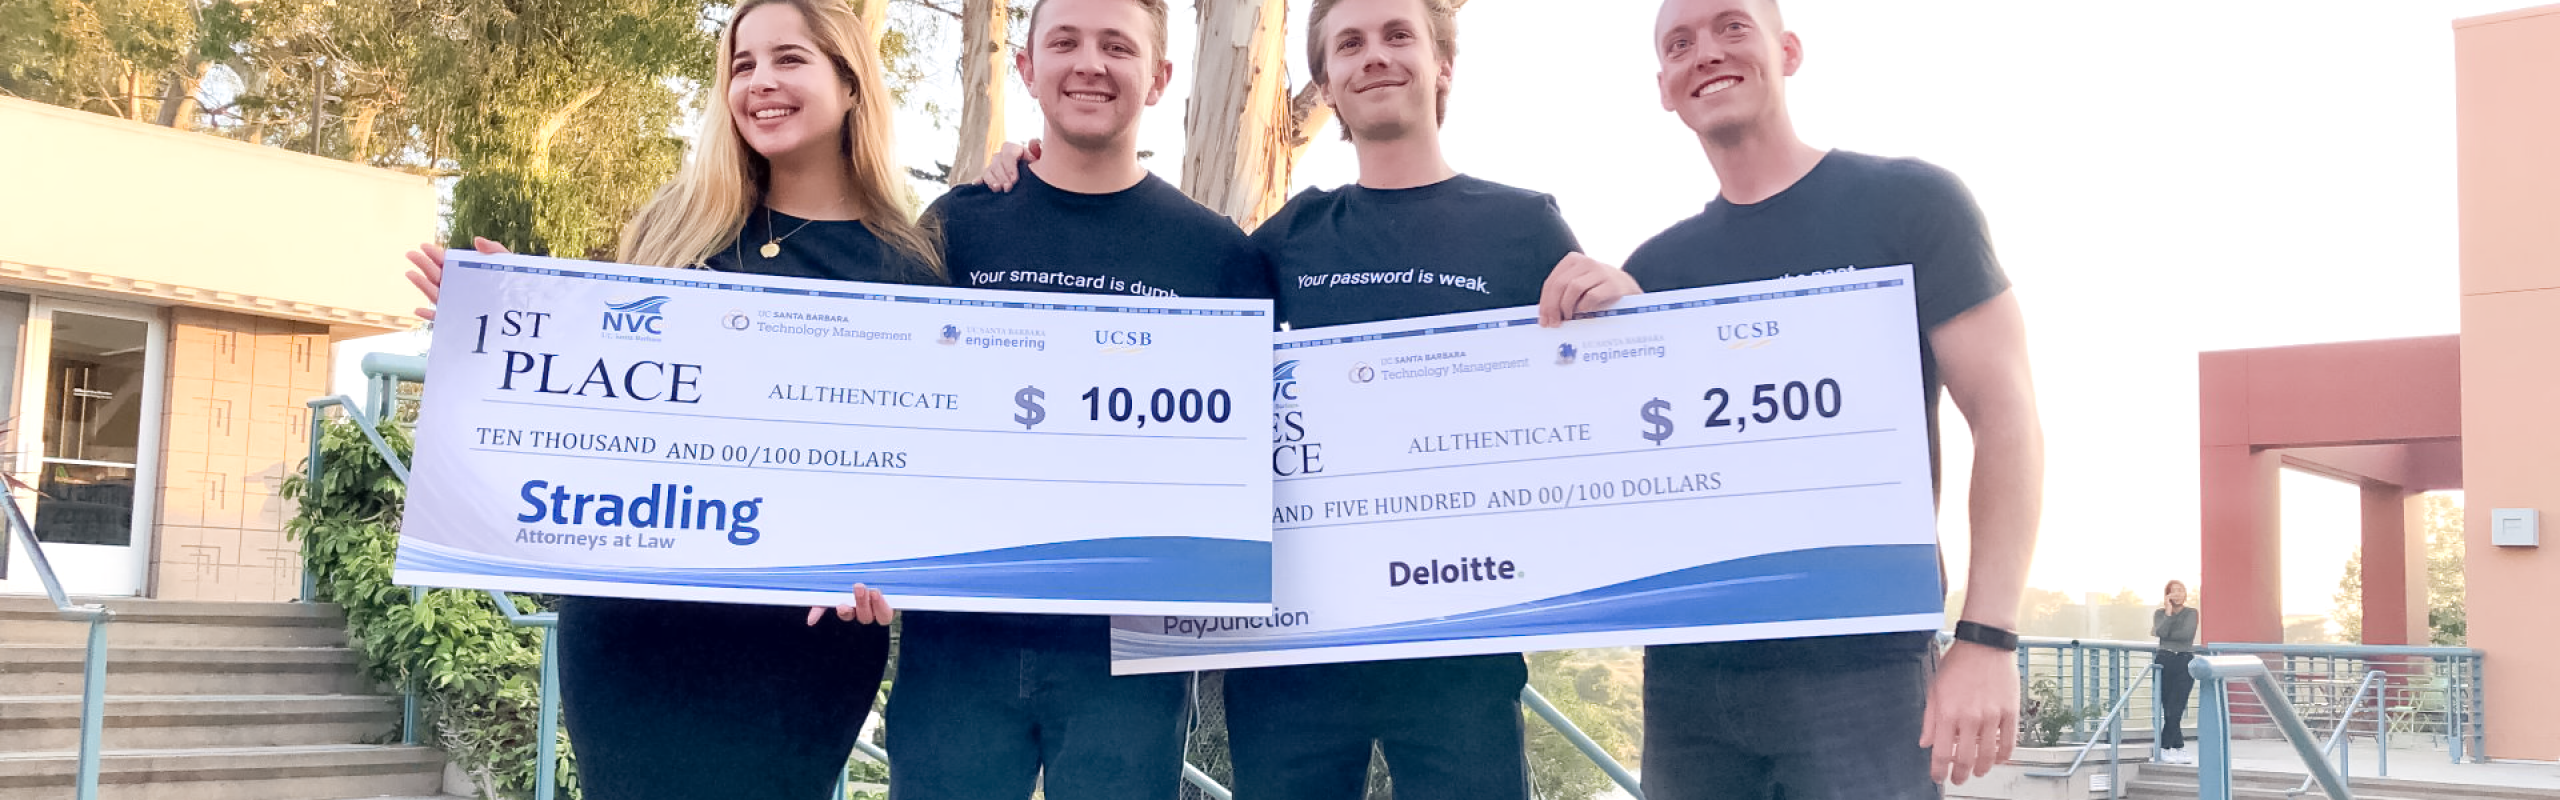 Allthenticate wins 2019 New Venture Competition at UCSB